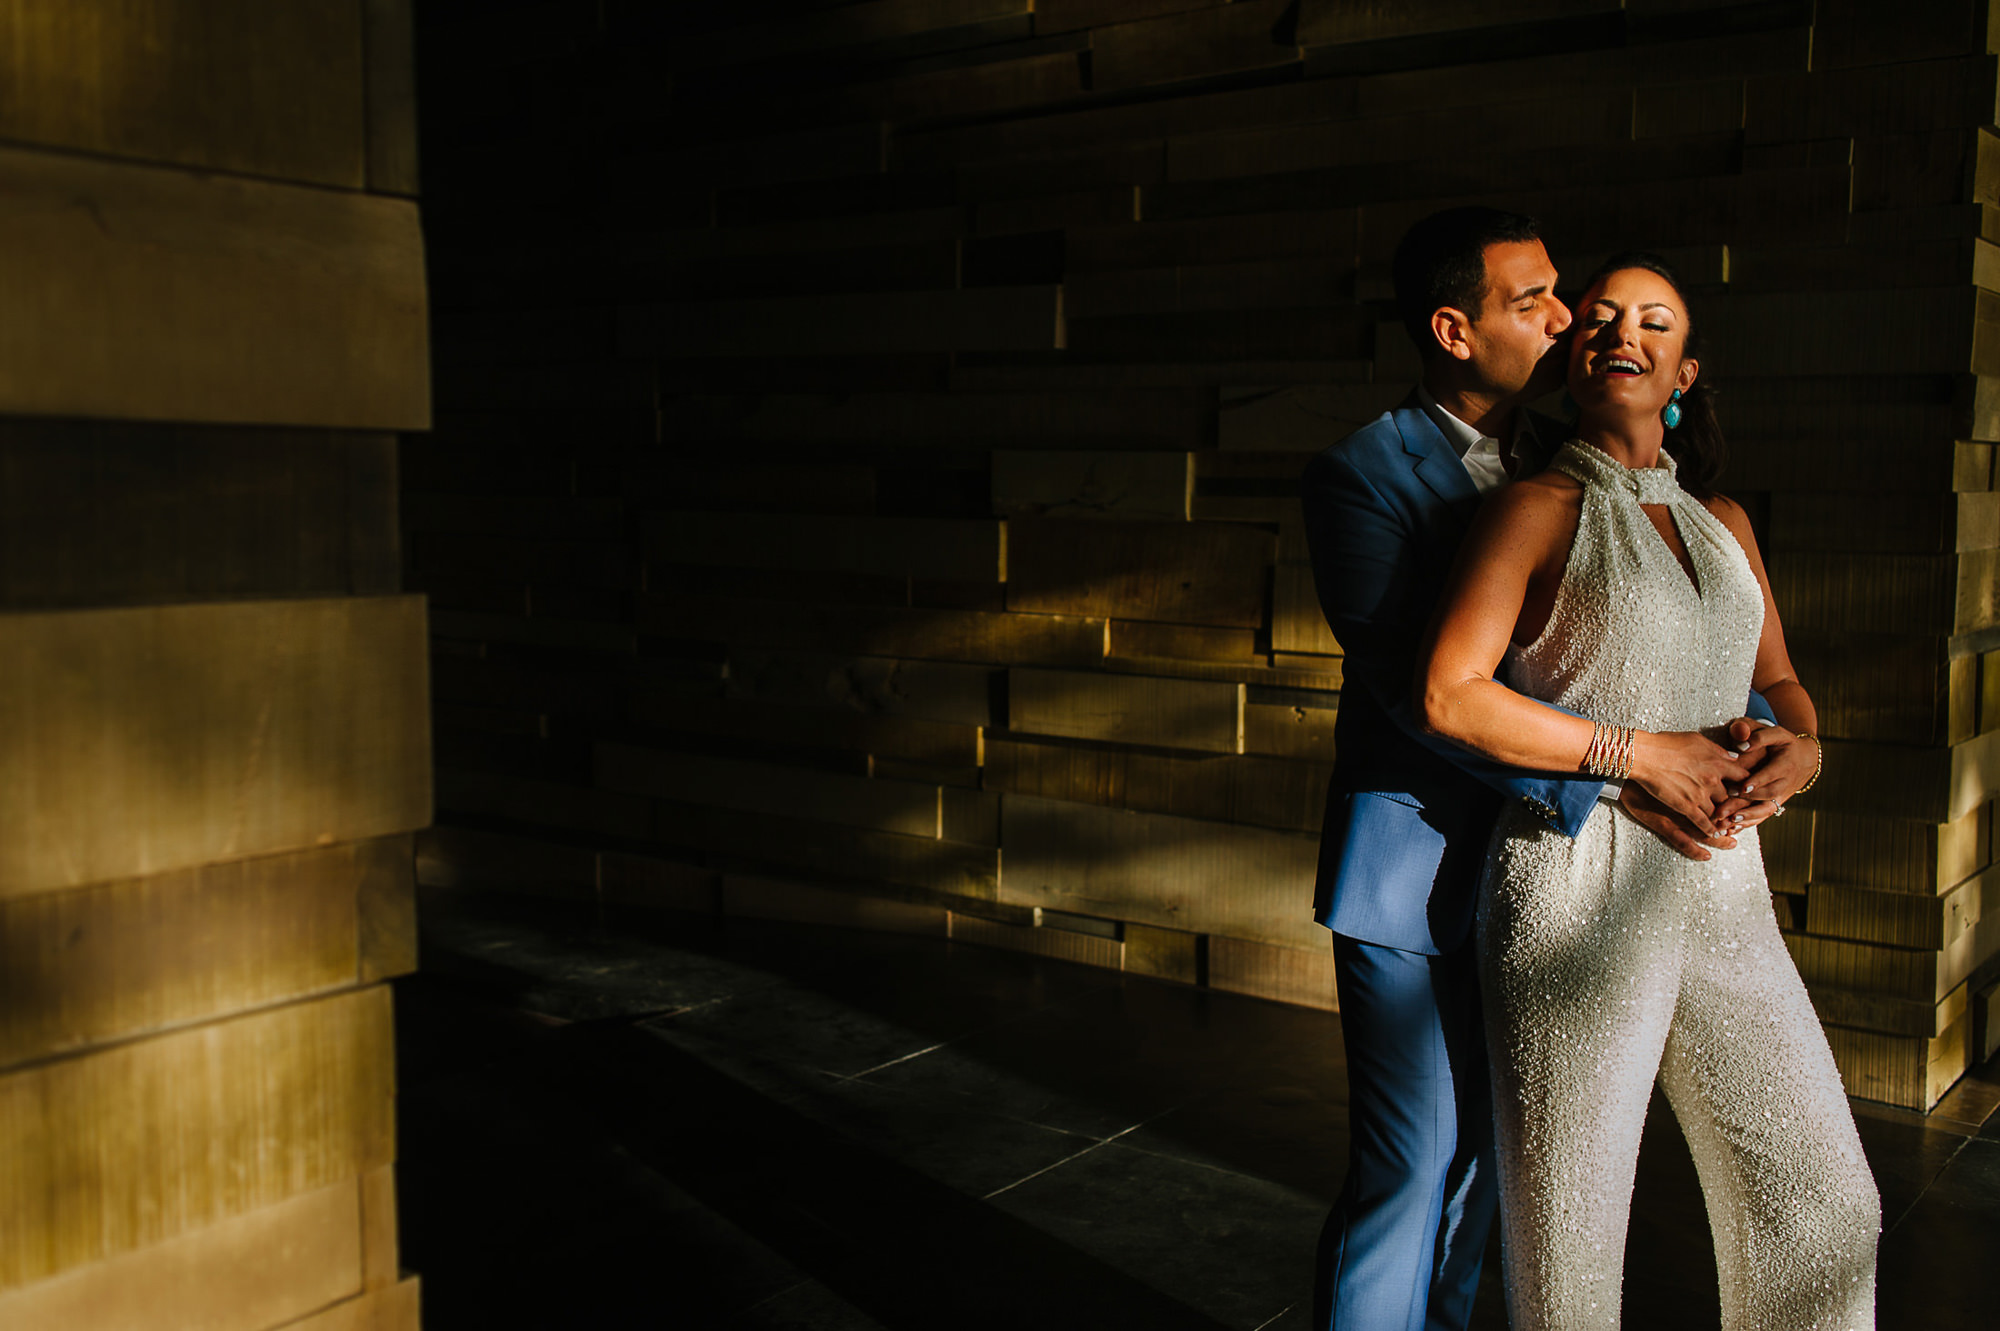 Bride in shimmering halter-neck pantsuit and groom in blue suit embrace, by Citlalli Rico